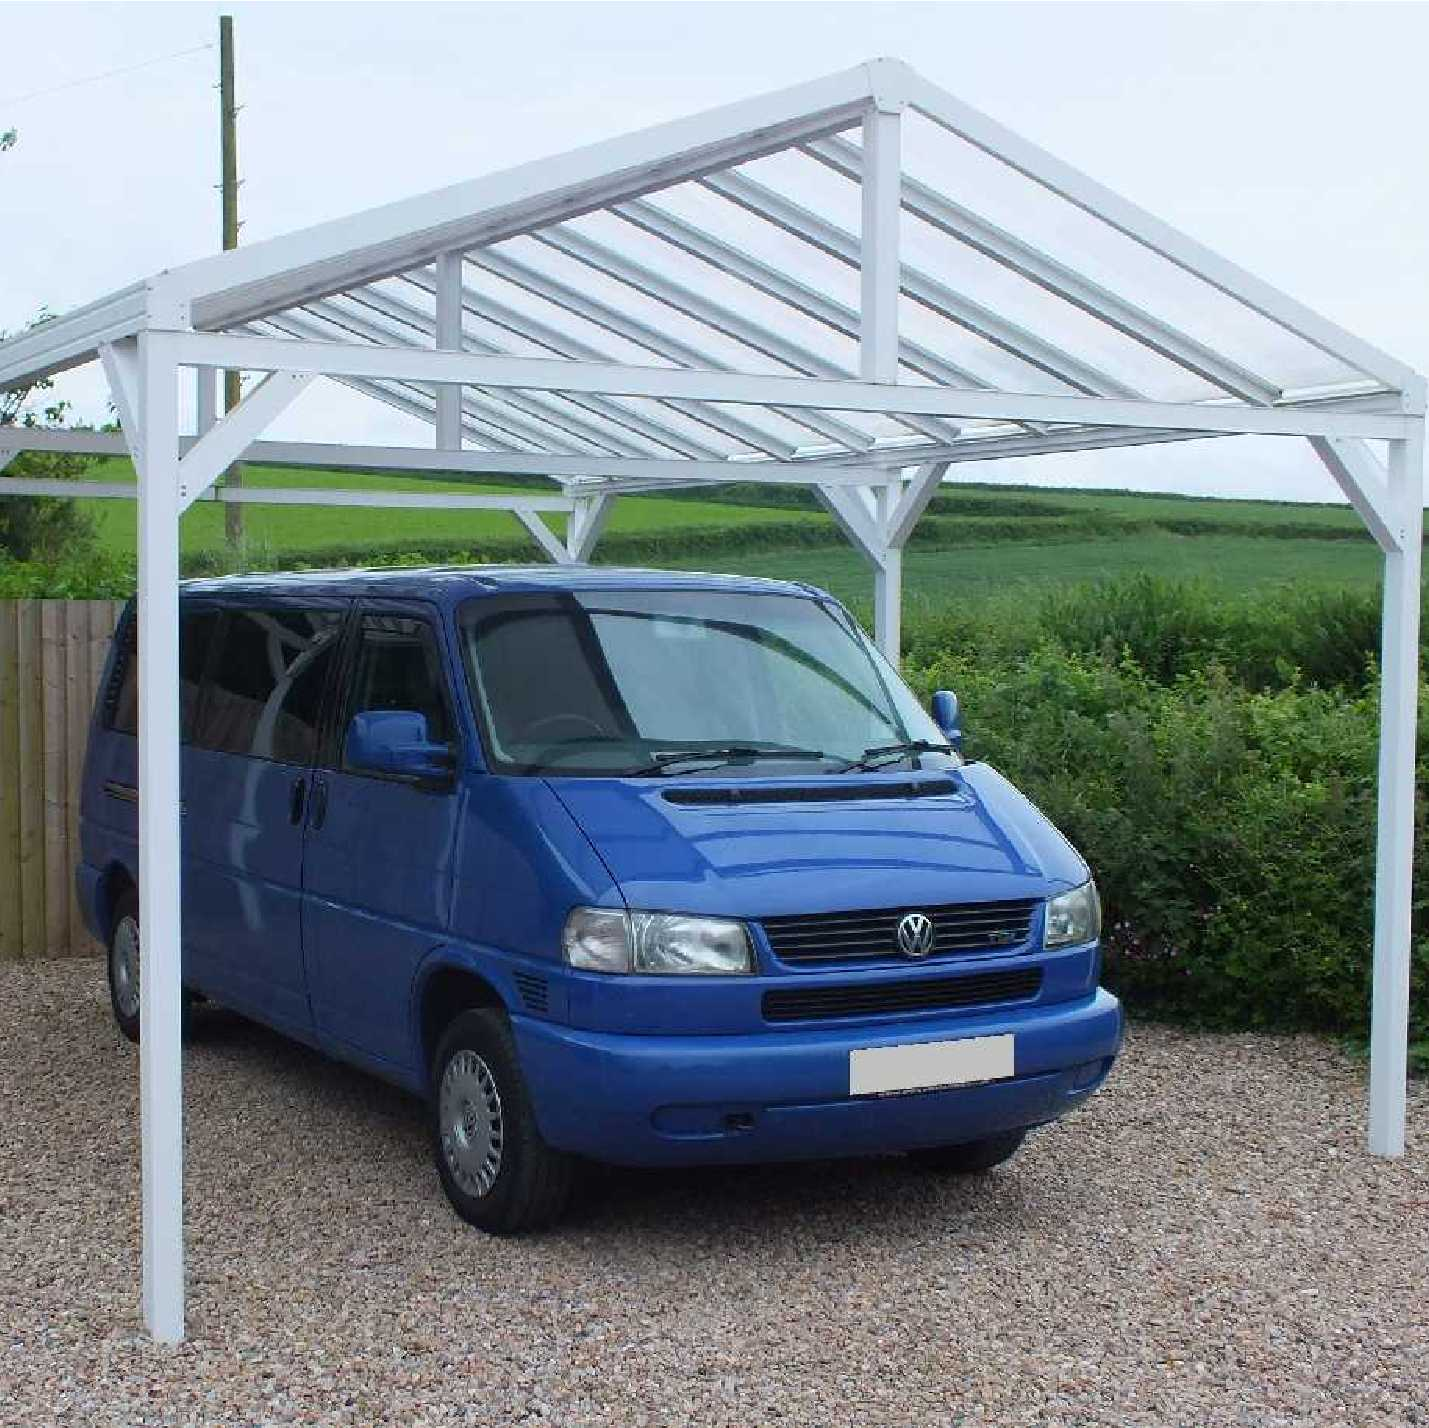 Omega Smart Free-Standing, Gable-Roof (type 1) Canopy with 16mm Polycarbonate Glazing - 5.2m (W) x 4.0m (P), (6) Supporting Posts